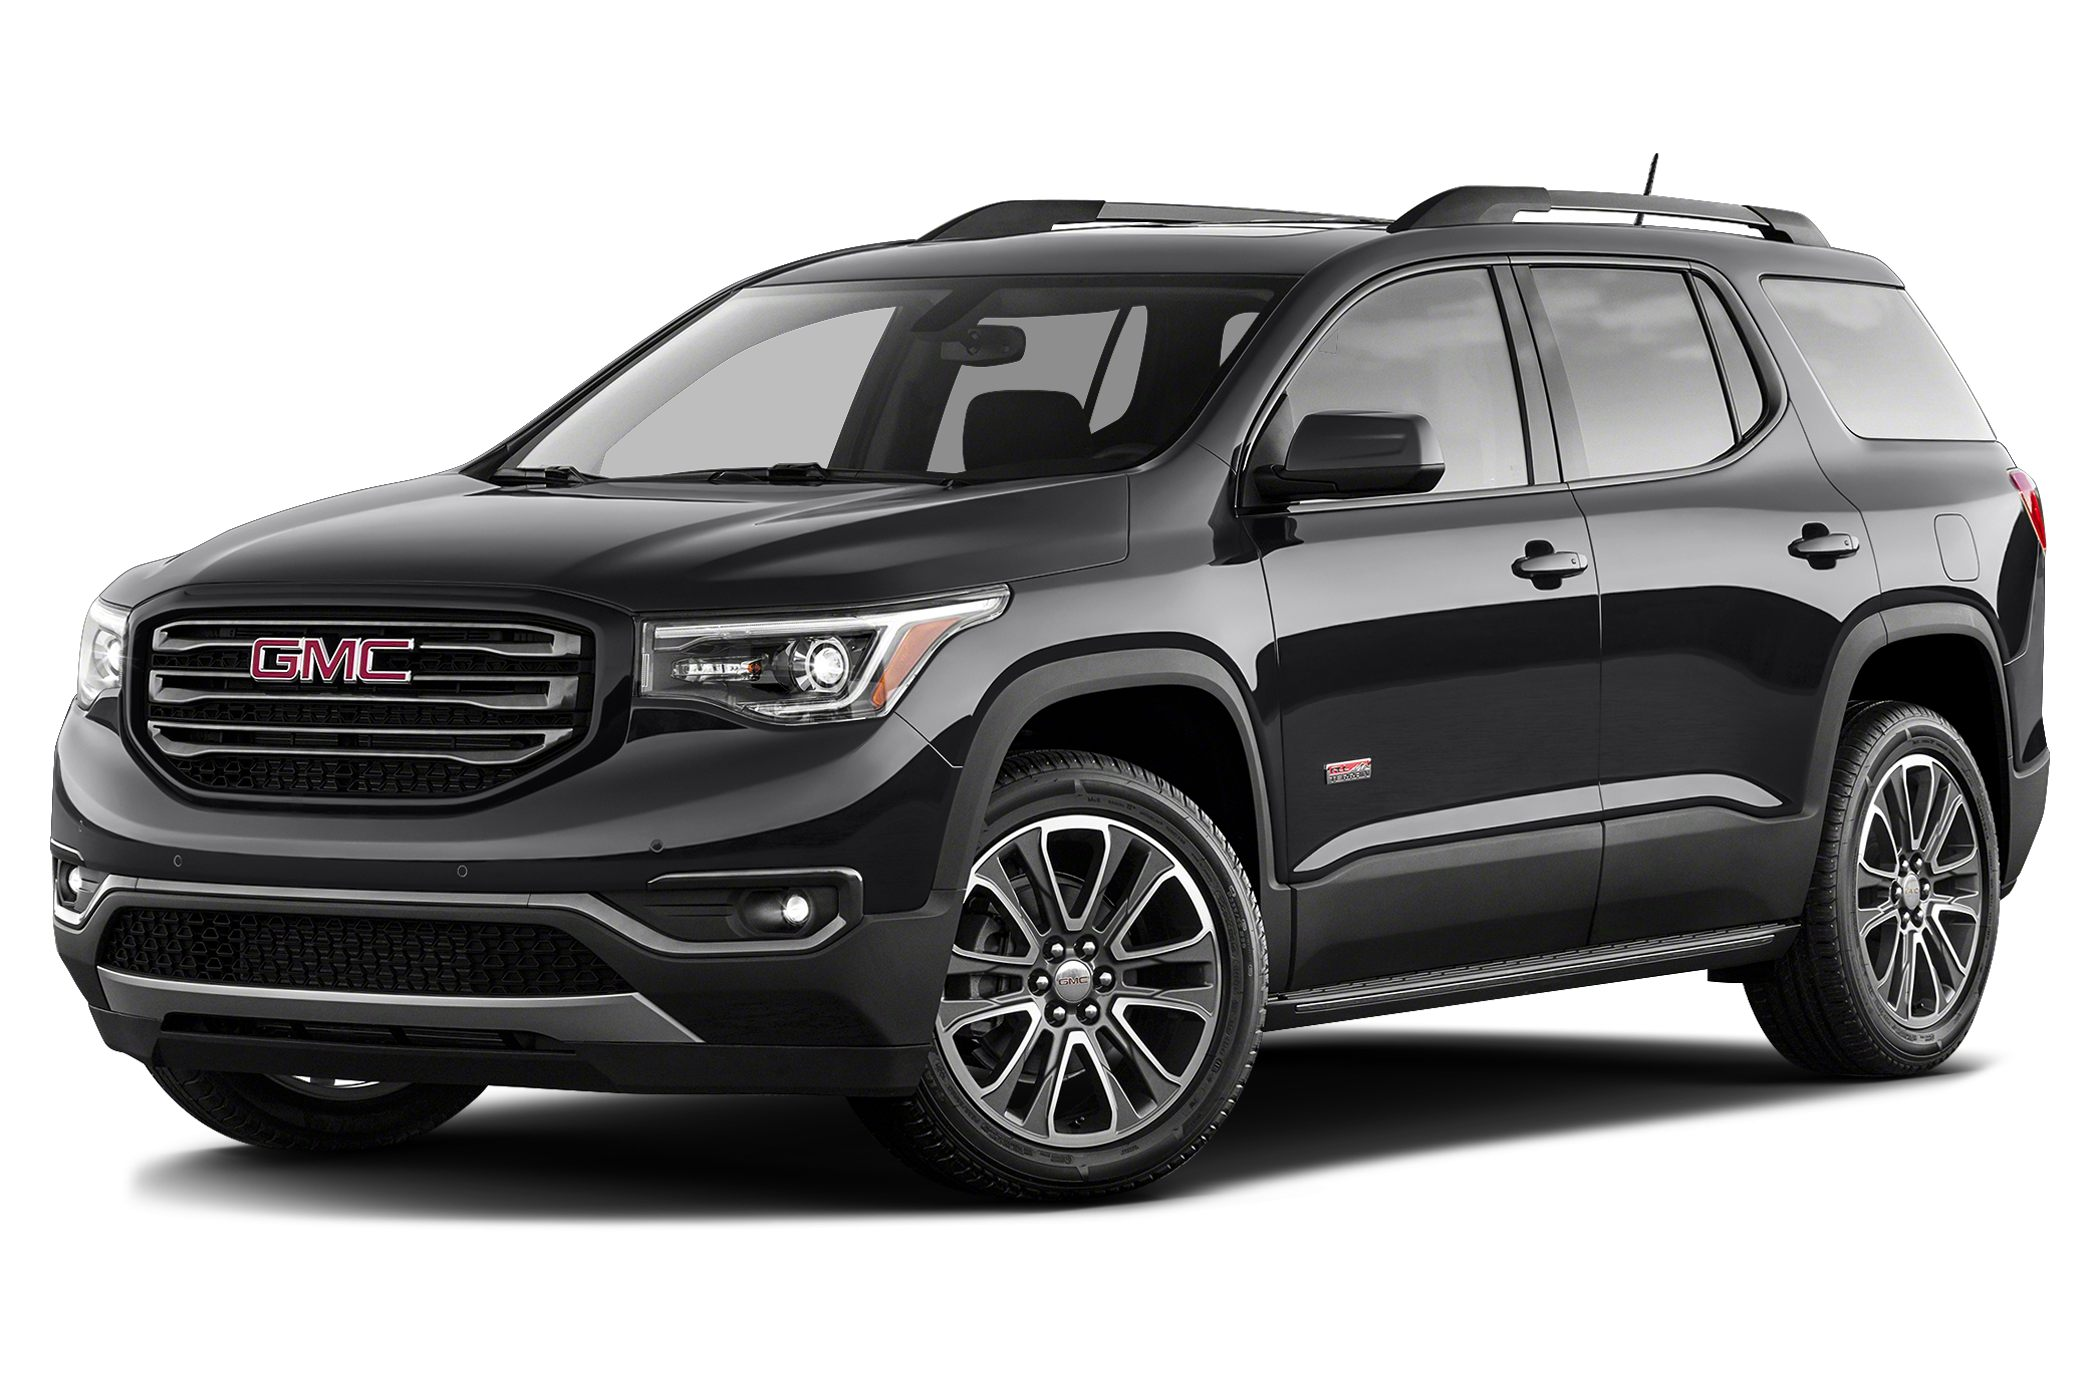 Gmc Acadia Lease >> 2017 Gmc Acadia Deals Prices Incentives Leases Carsdirect